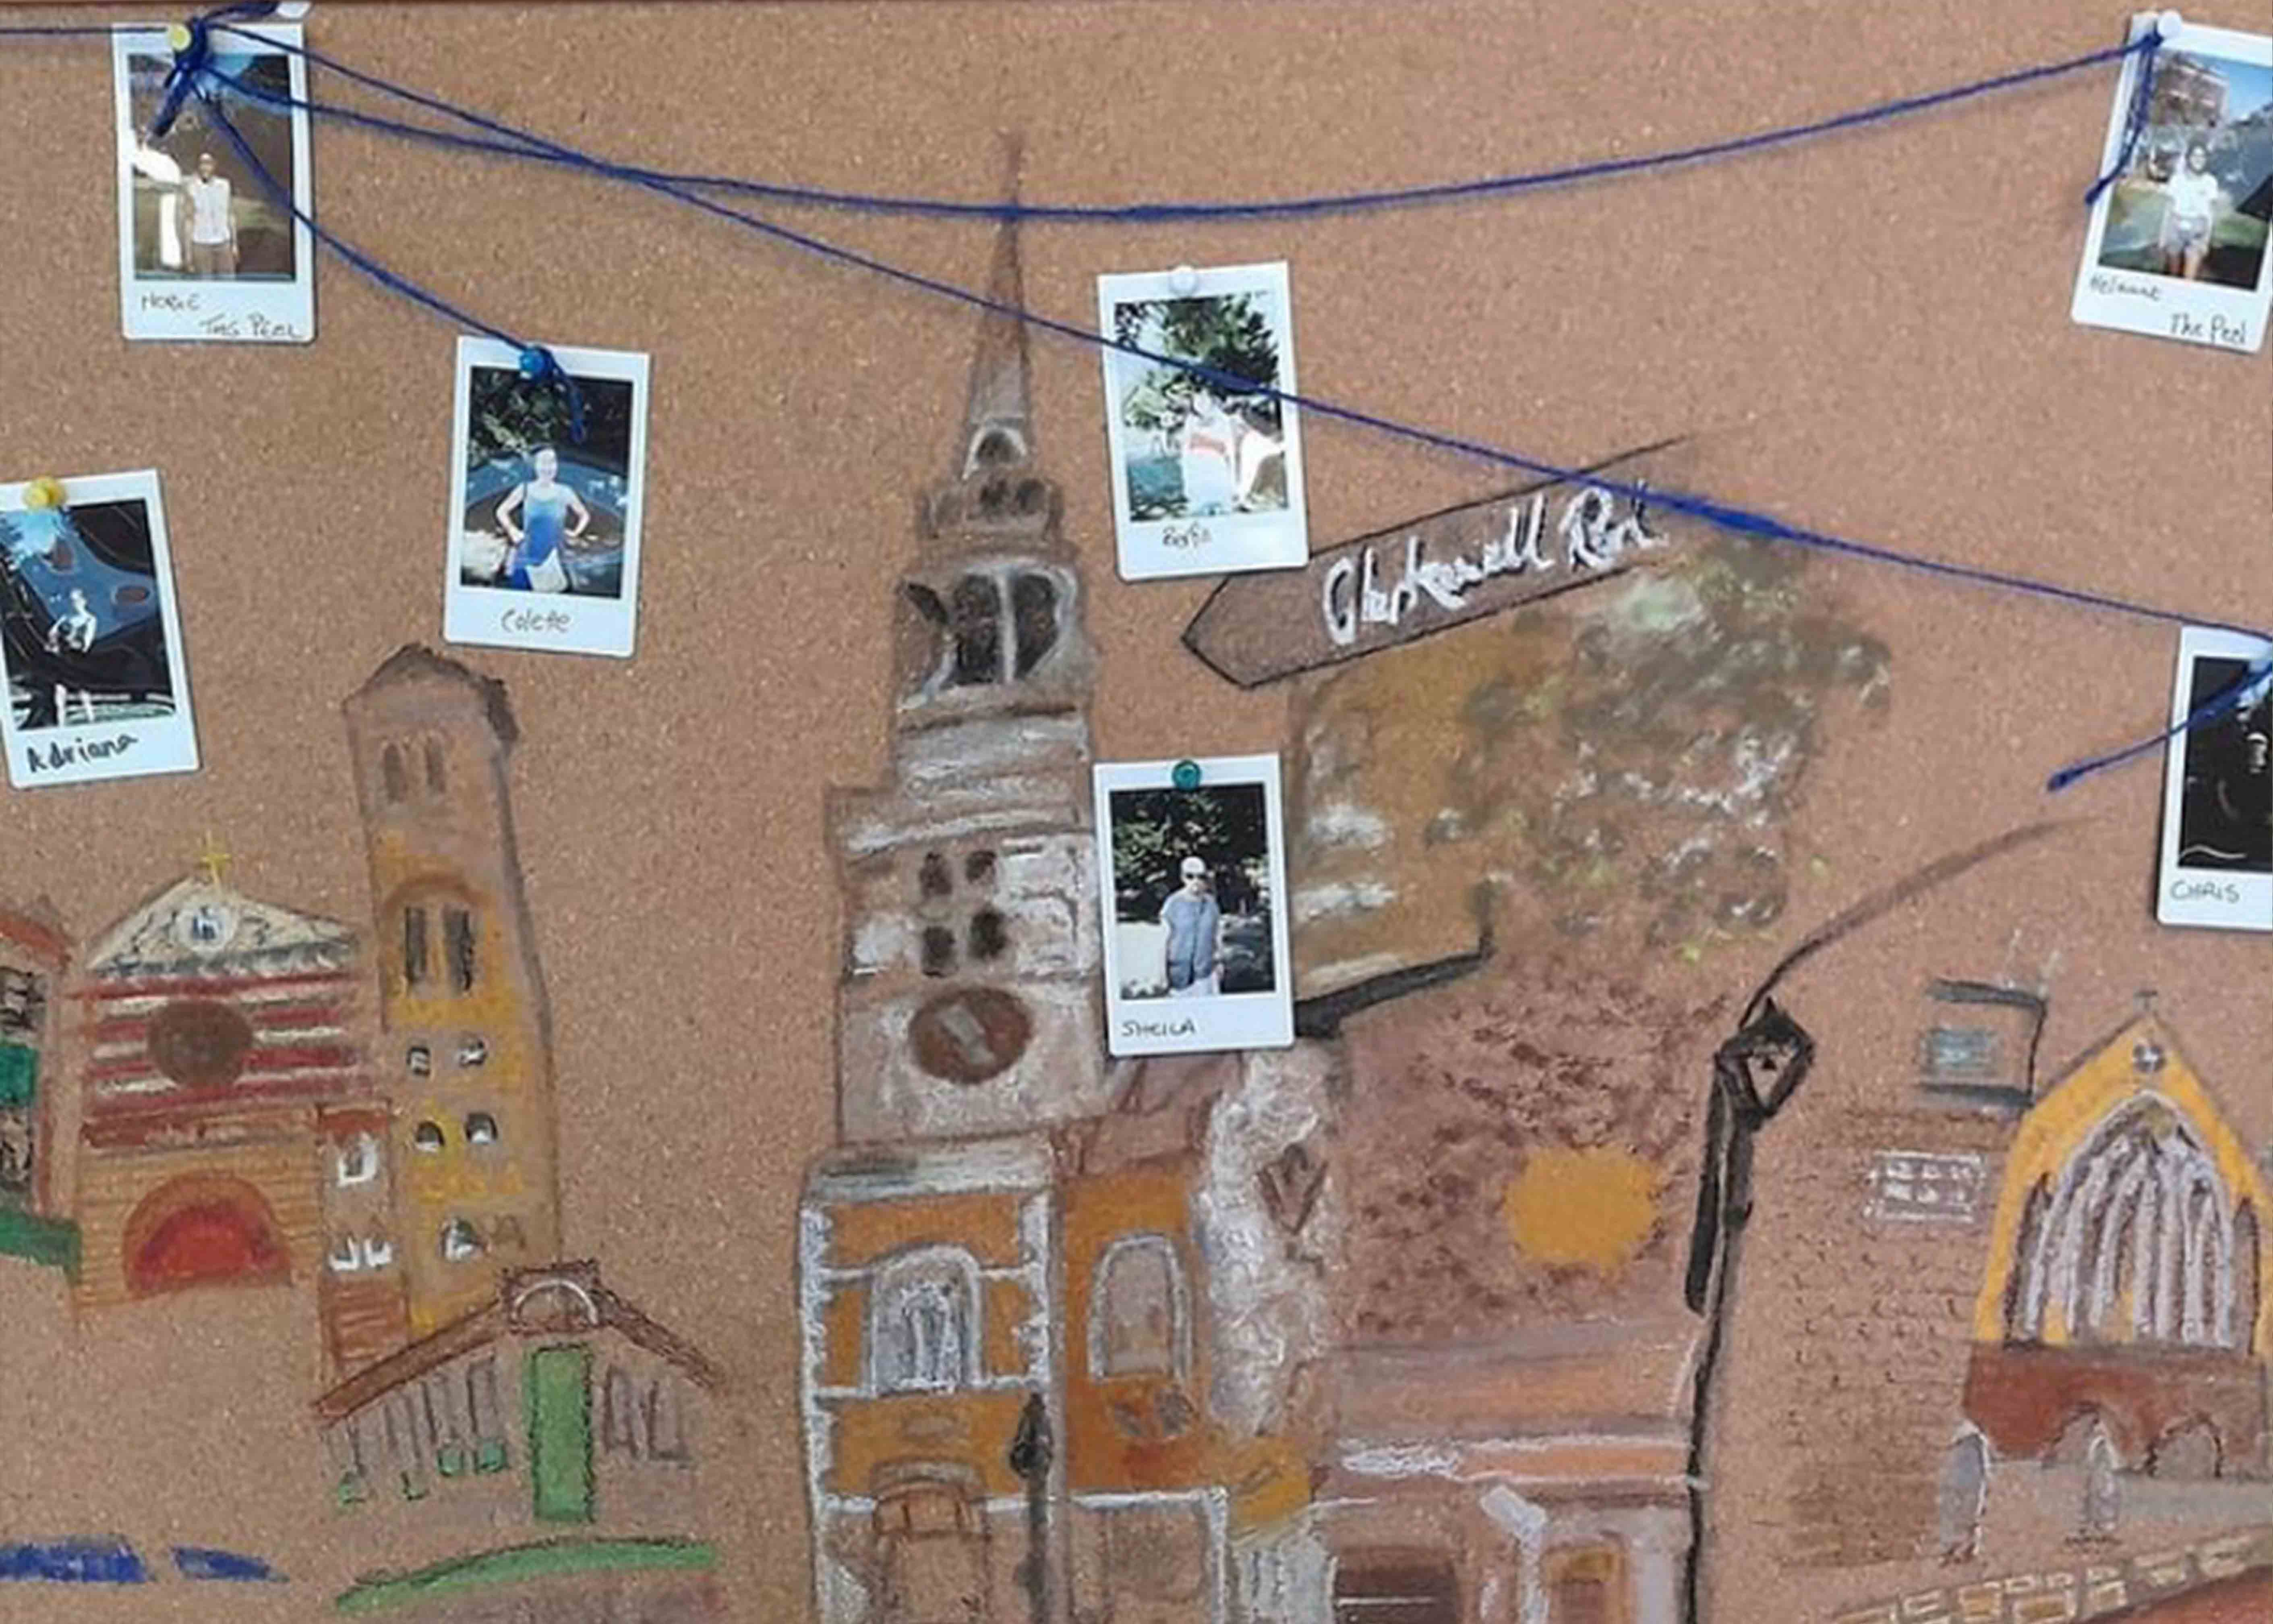 Pinboard of drawings and photos